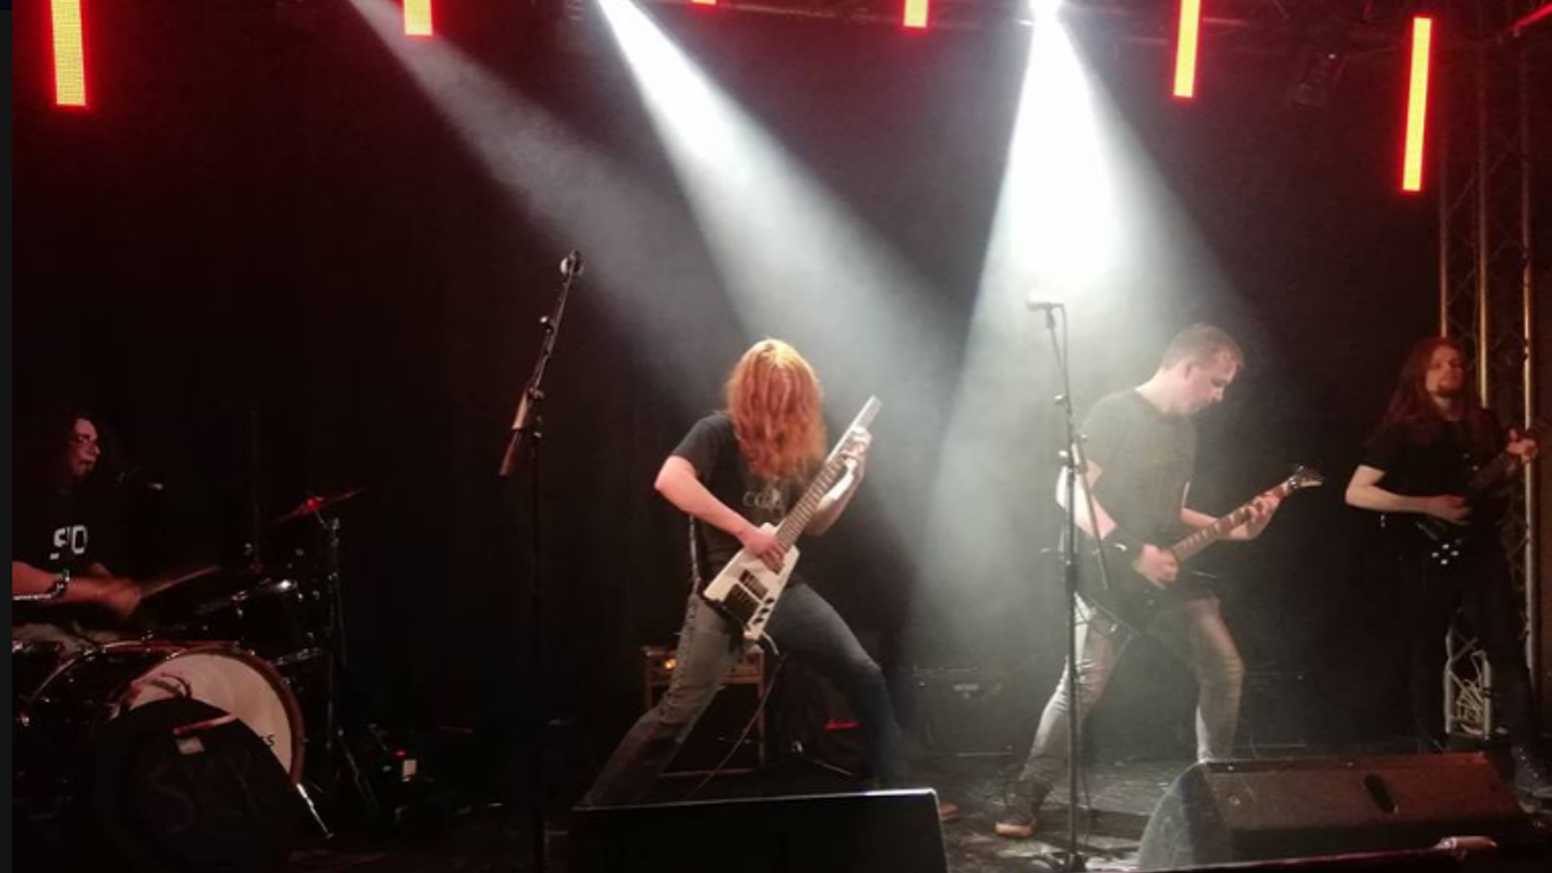 SICK is a Speed Rock band from Liverpool. Speed Rock is a genre similar to Speed Metal, although with a crisp and lighter sound.